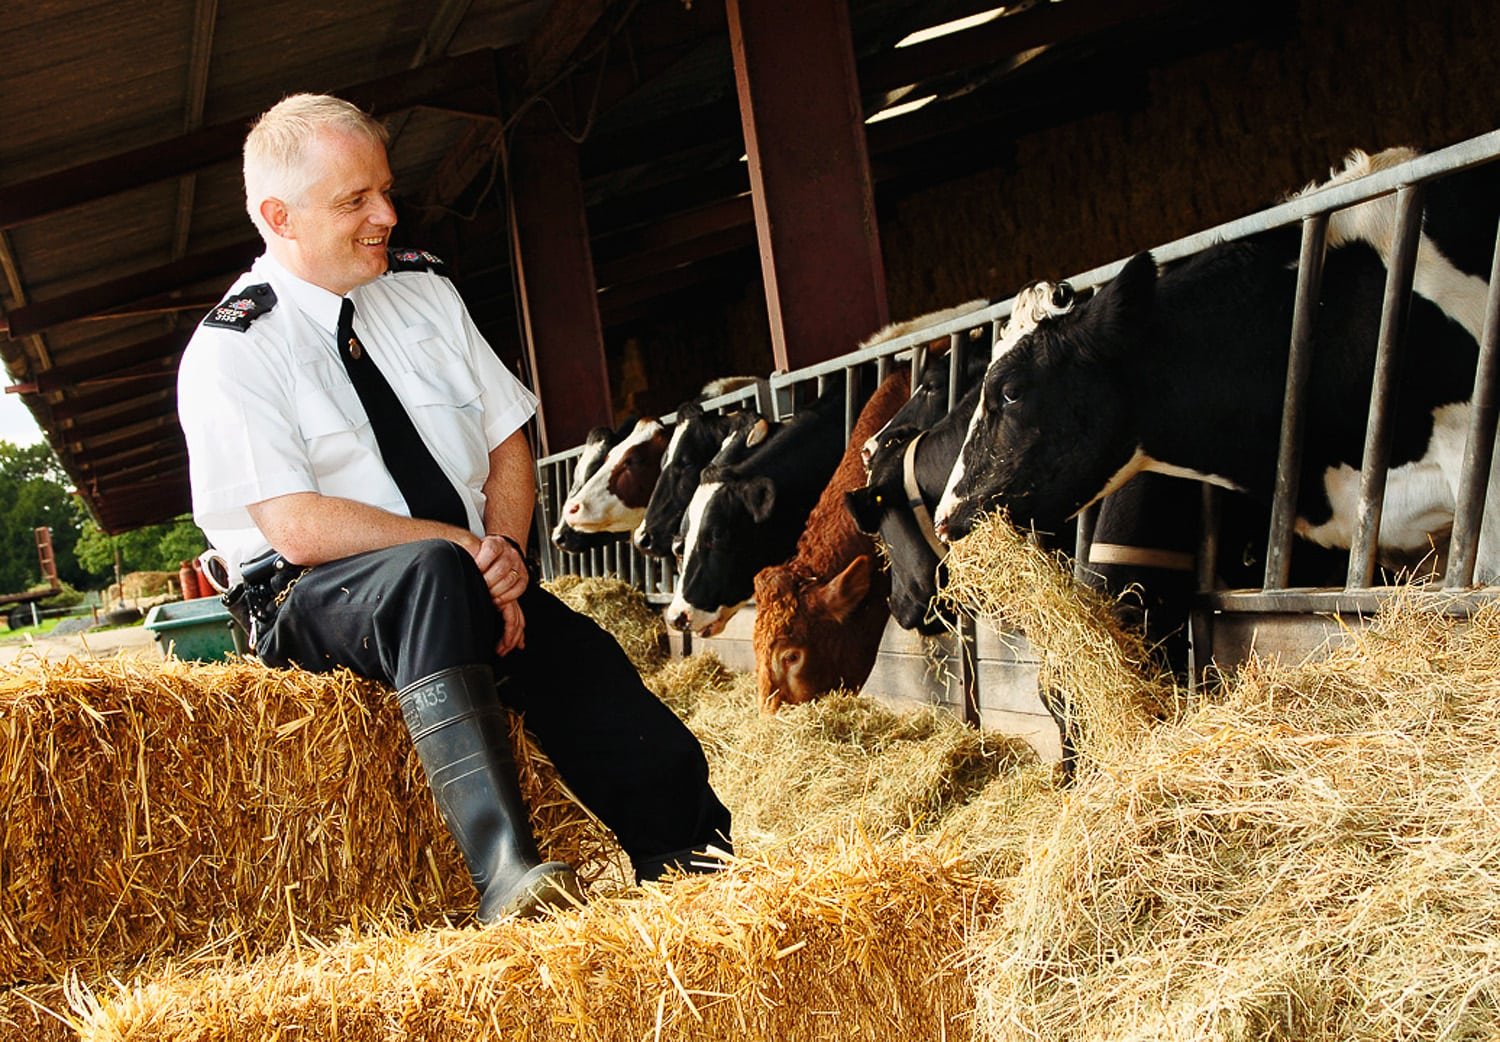 Police officer with cows, rural crime